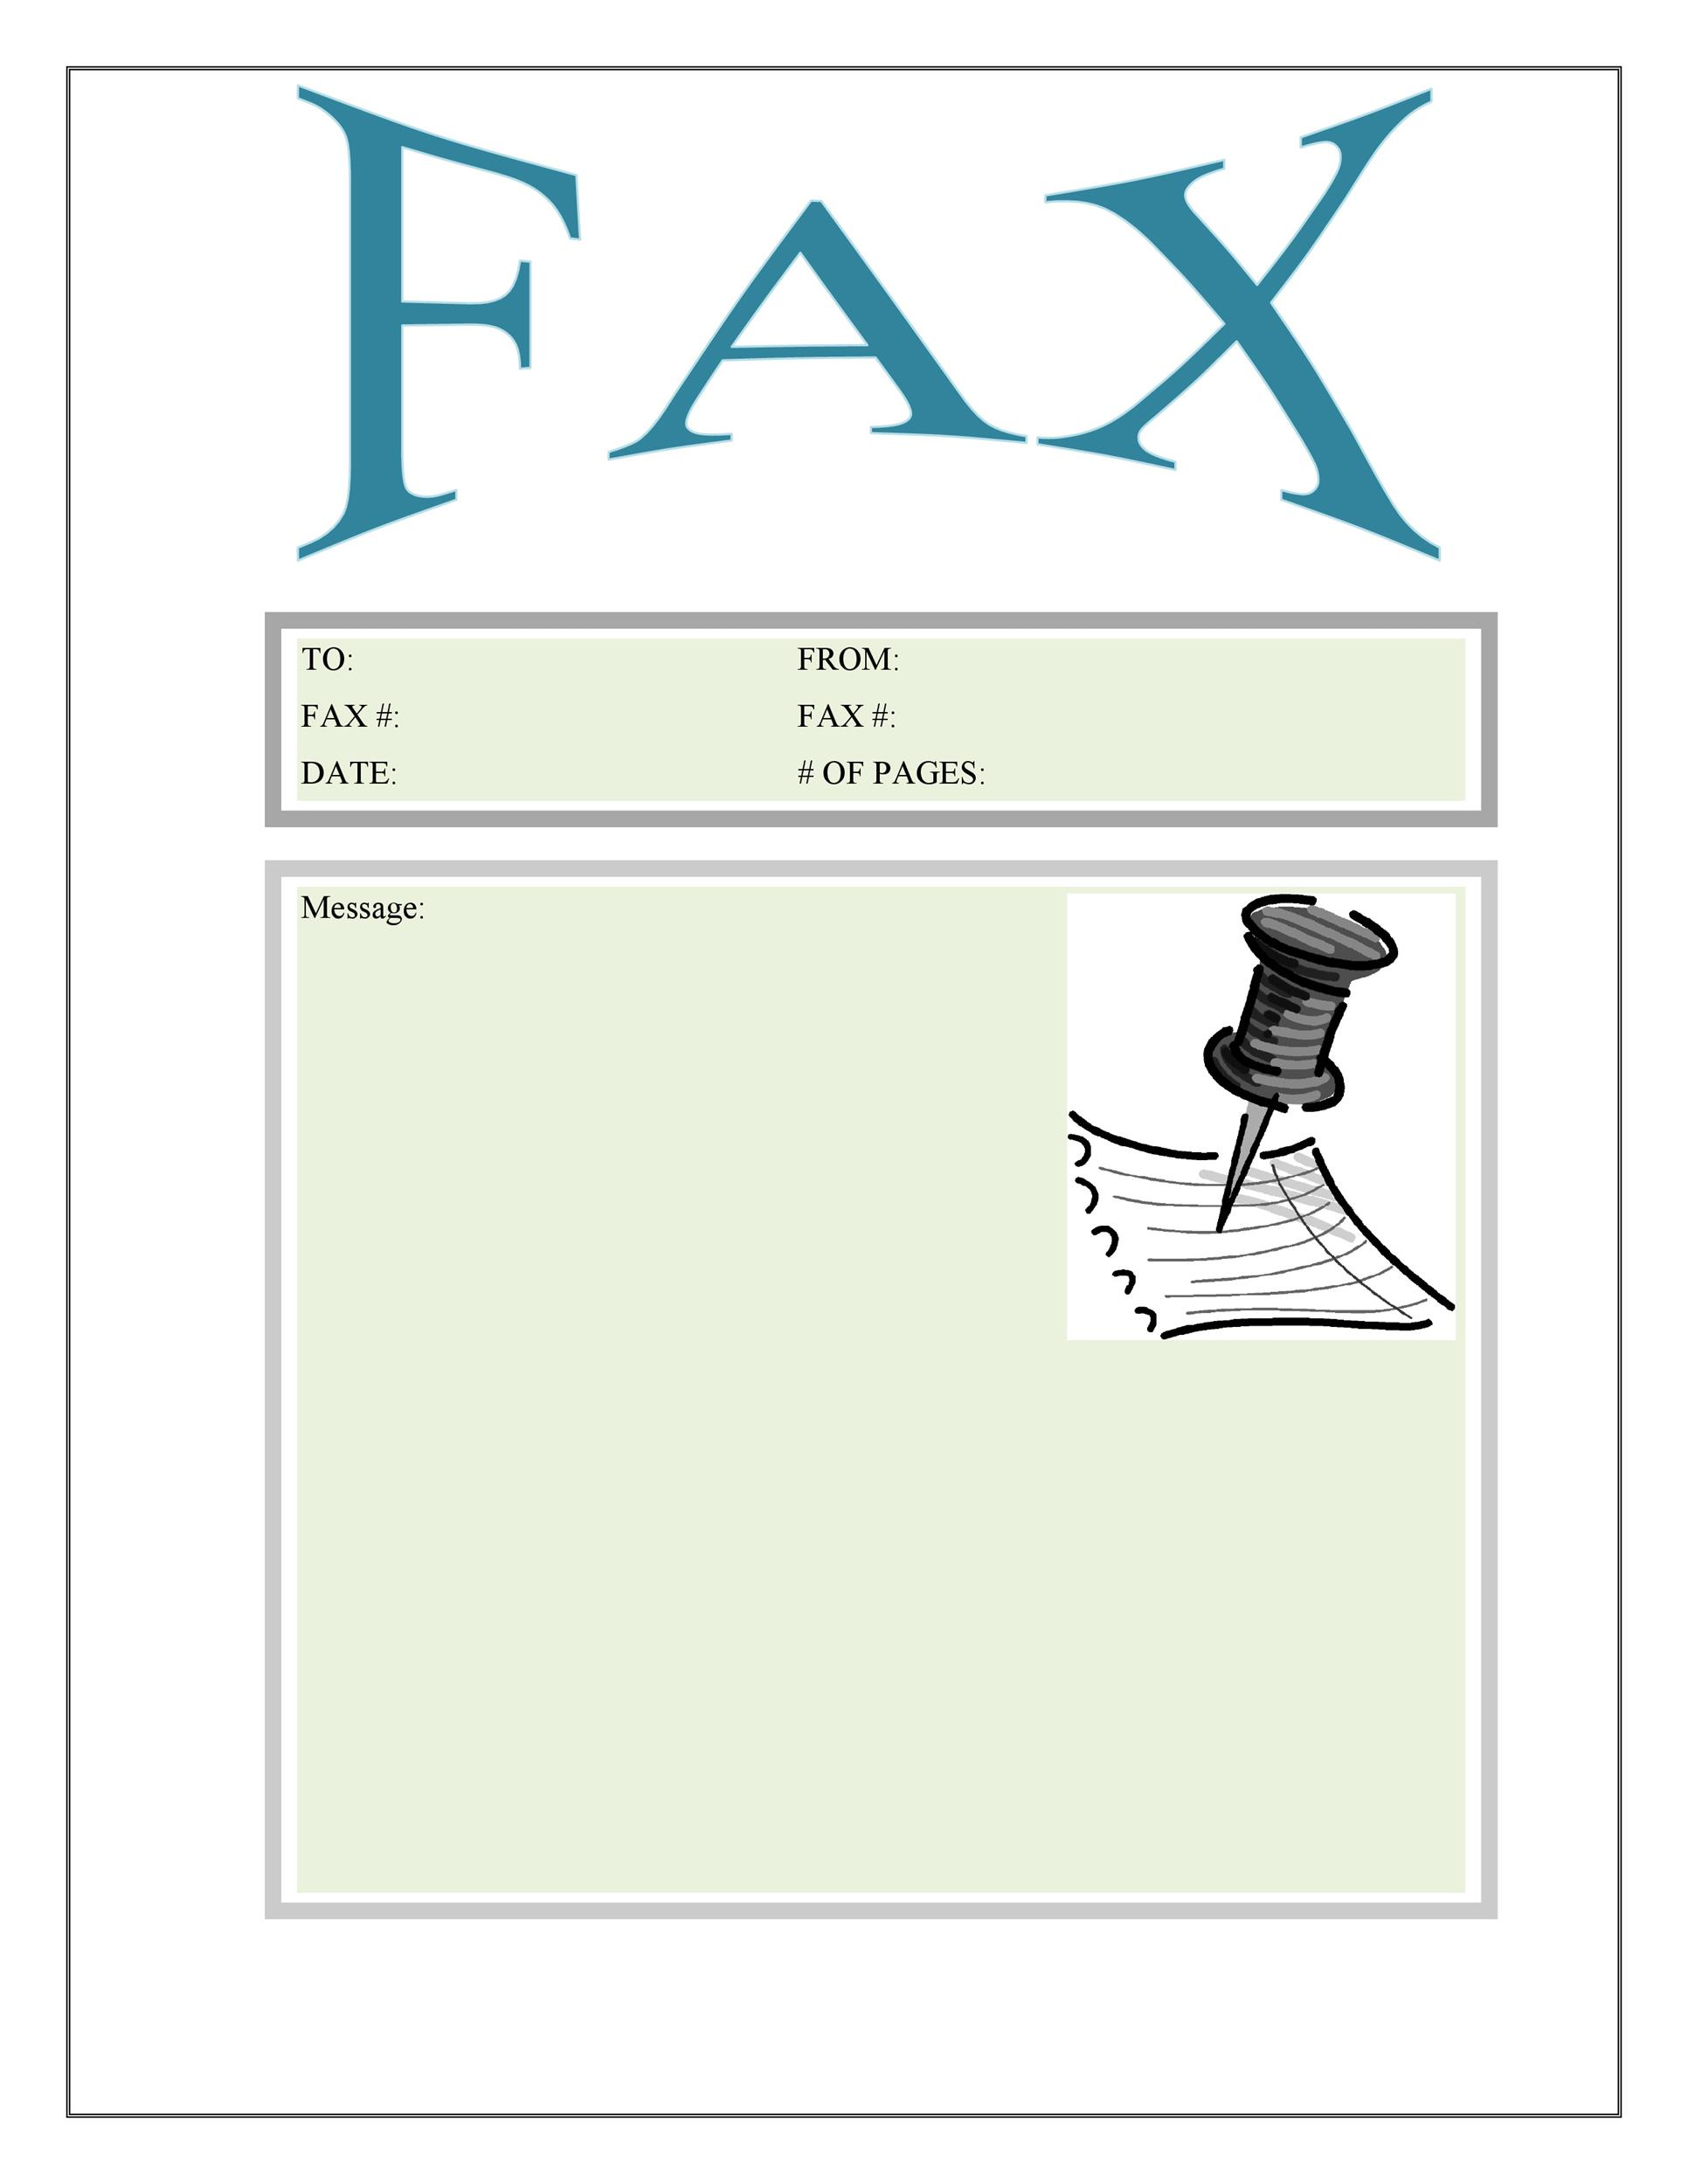 Fax Cover Sheet Template 06